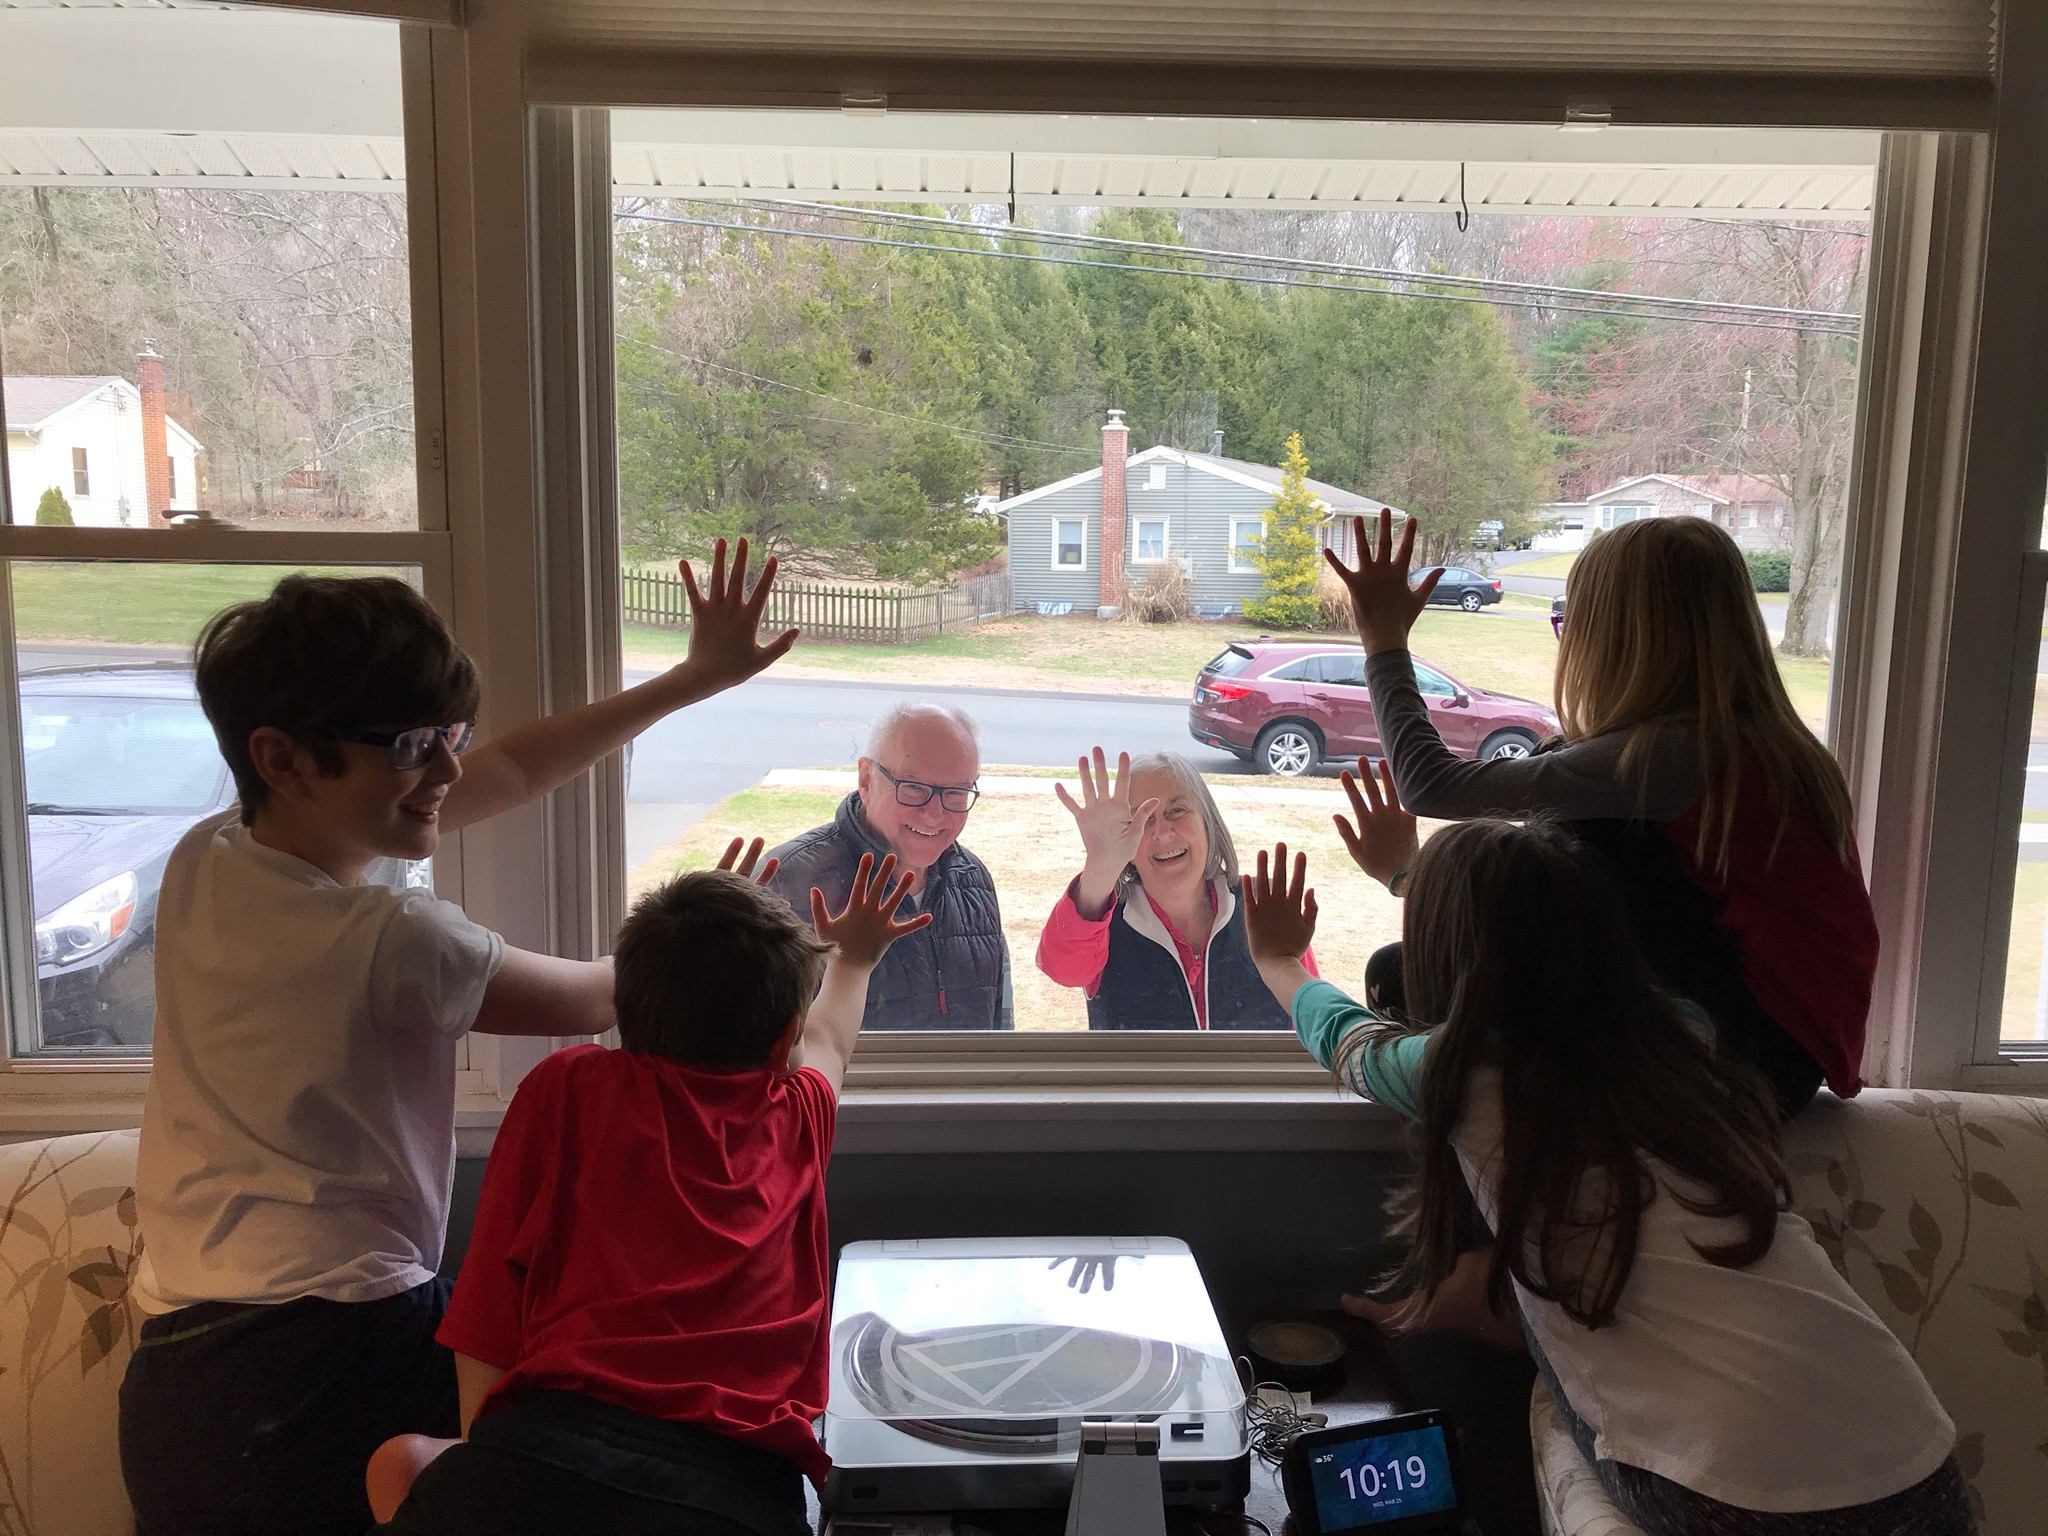 Four children with their hands on a window from the inside. Two adults wave from outside.